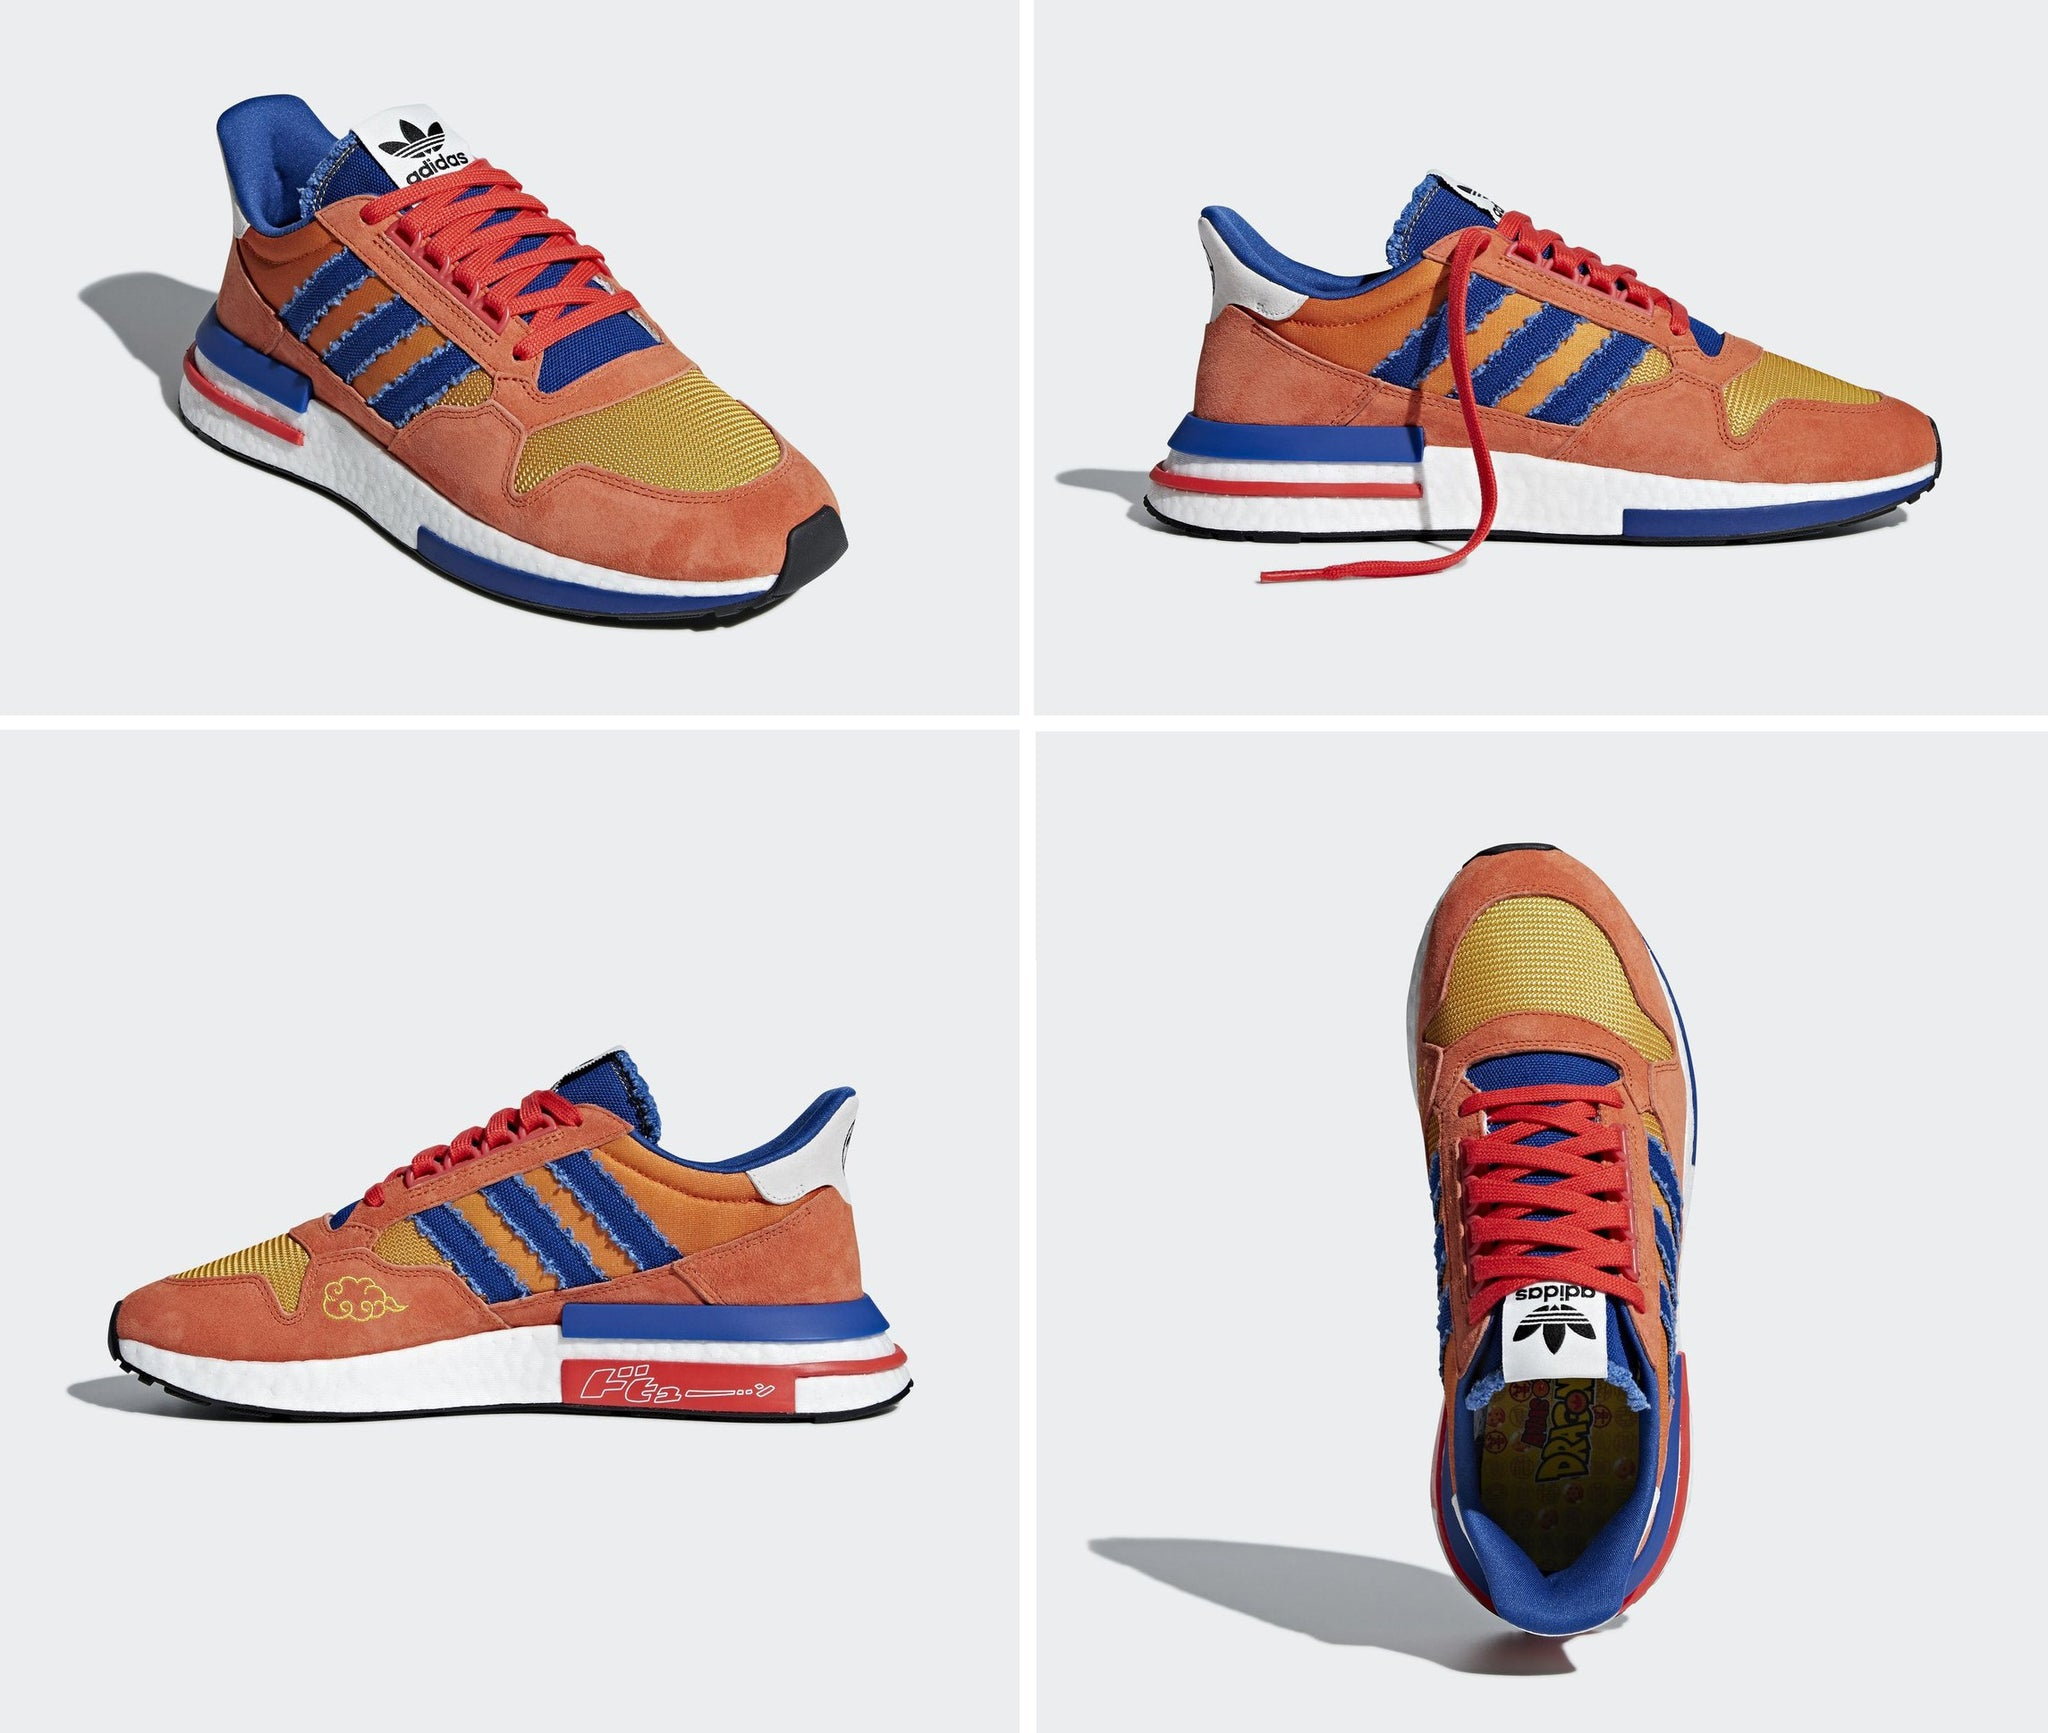 140061bad Outubro celebra a chegada do primeiro drop da collab Adidas x Dragon ...